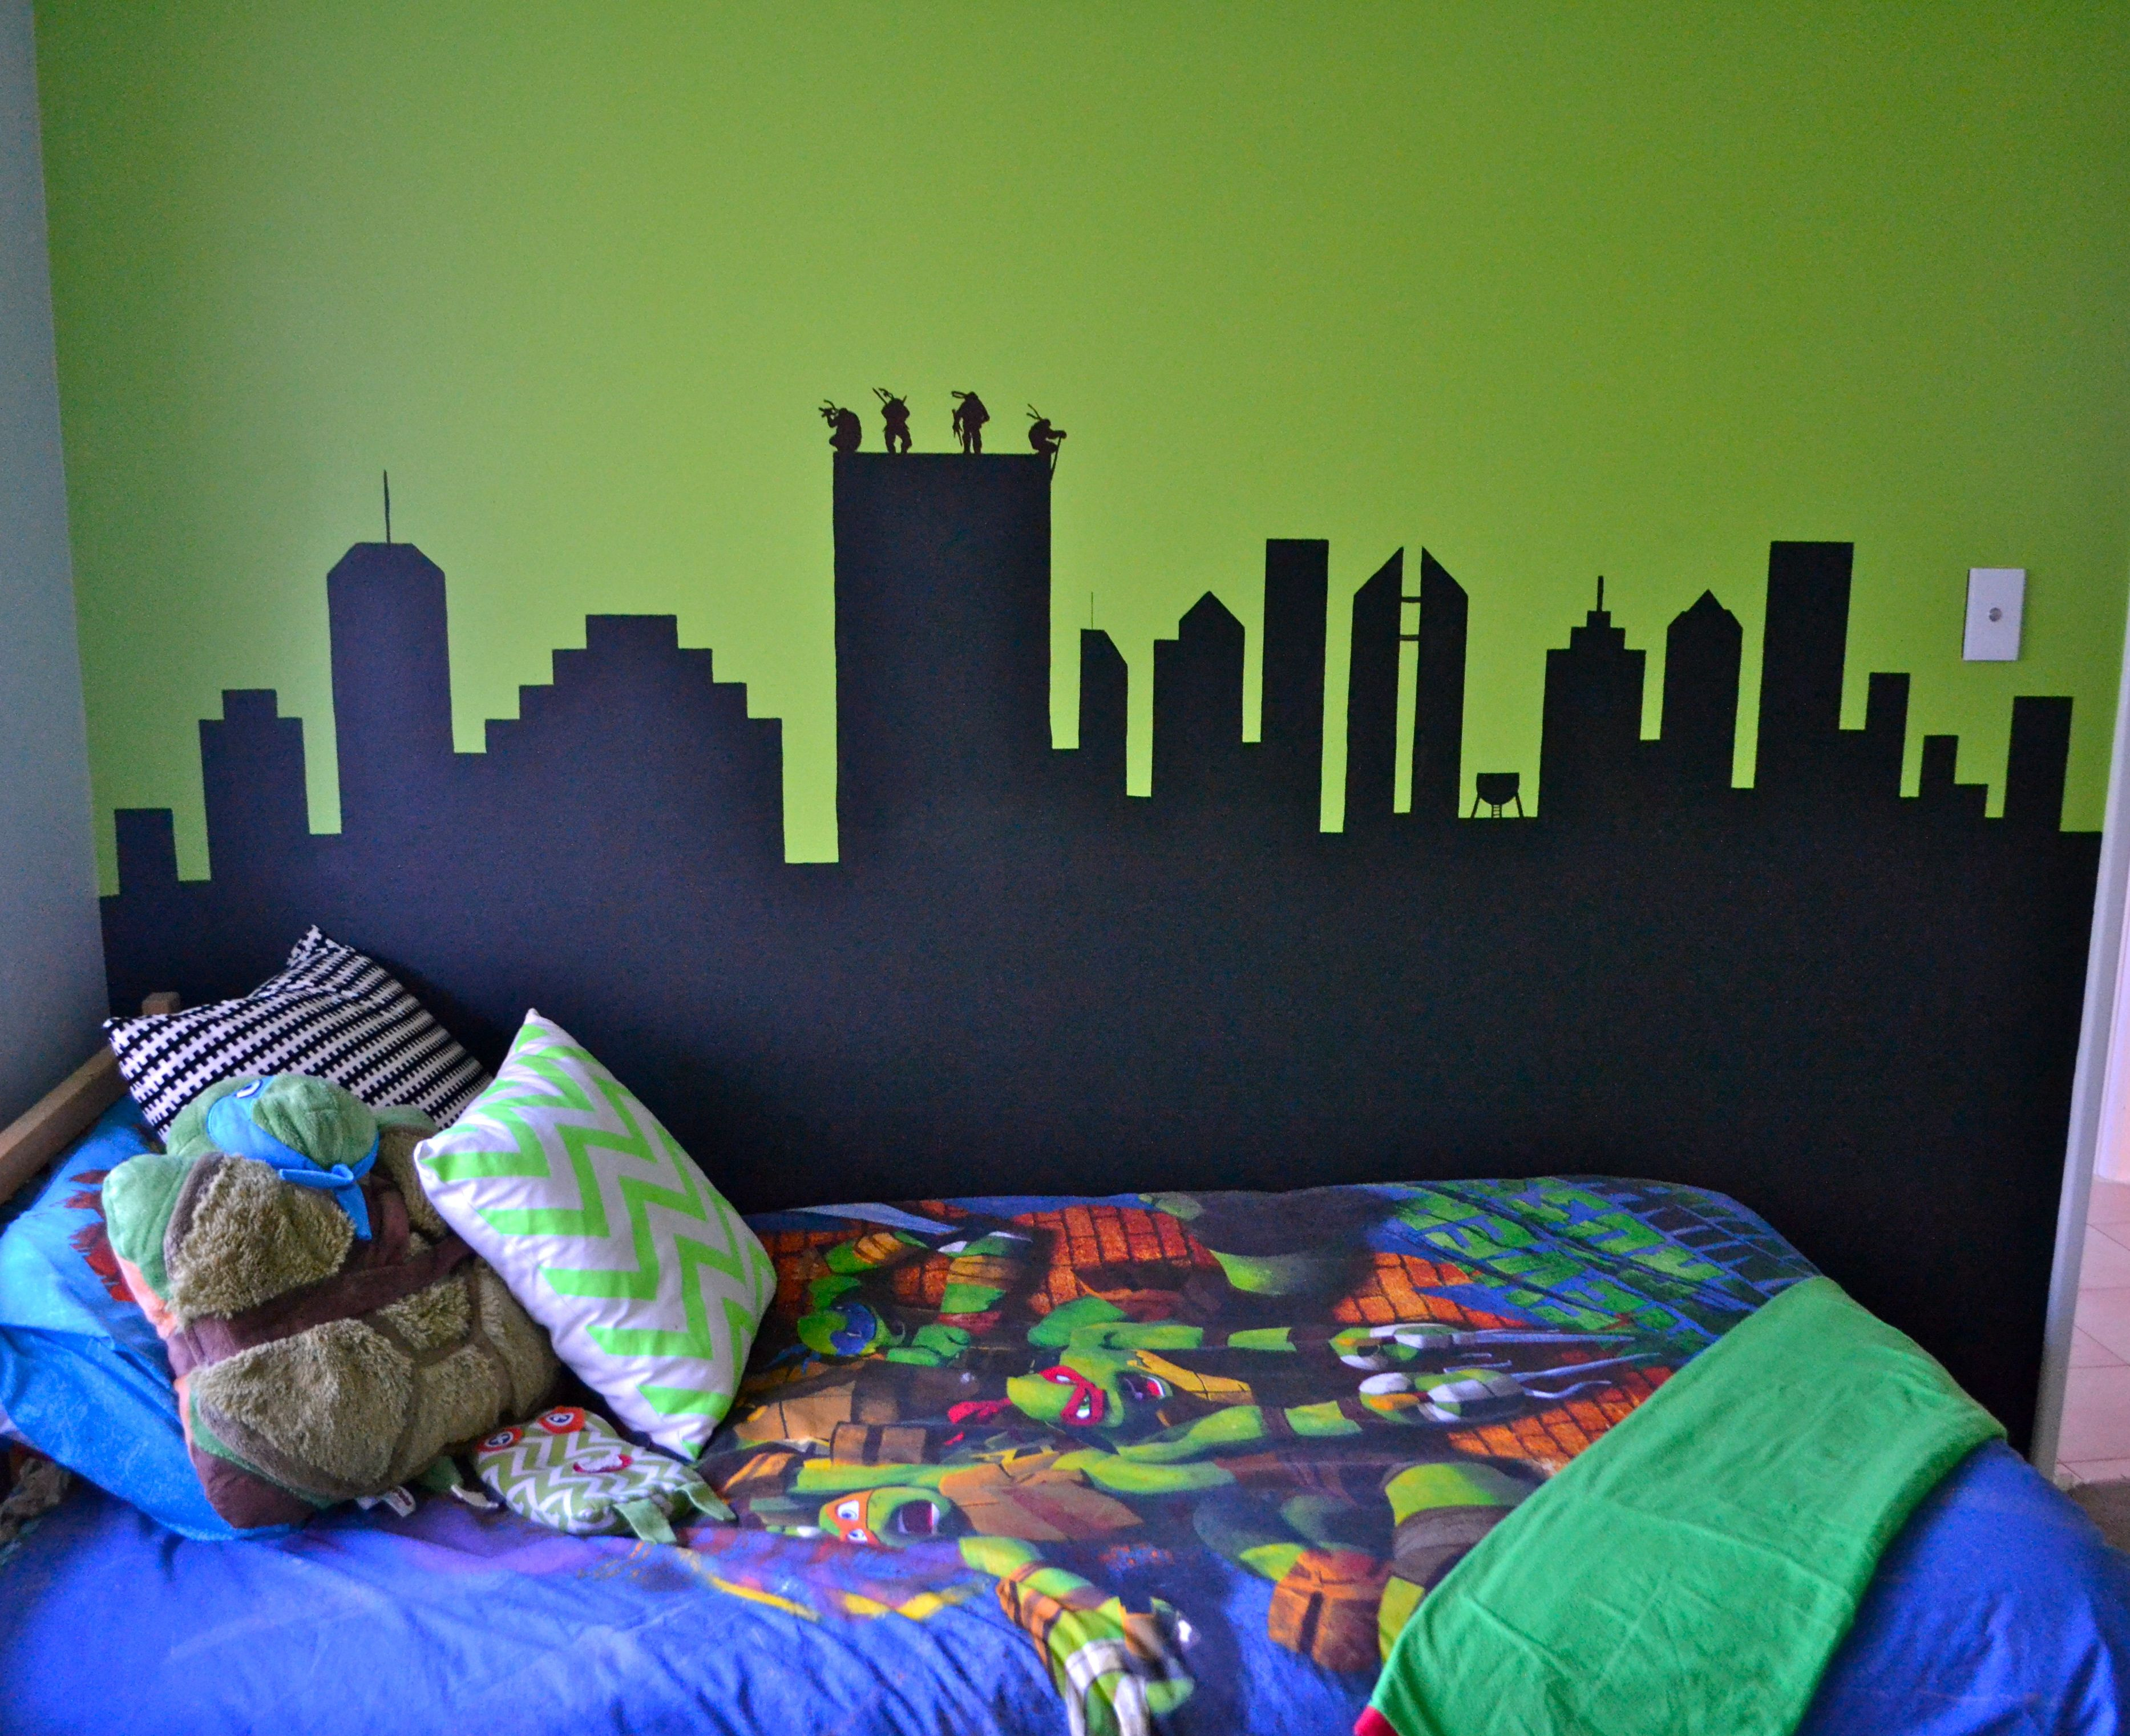 Ninja turtle bedroom - Find This Pin And More On Ninja Turtle Bedroom Ideas